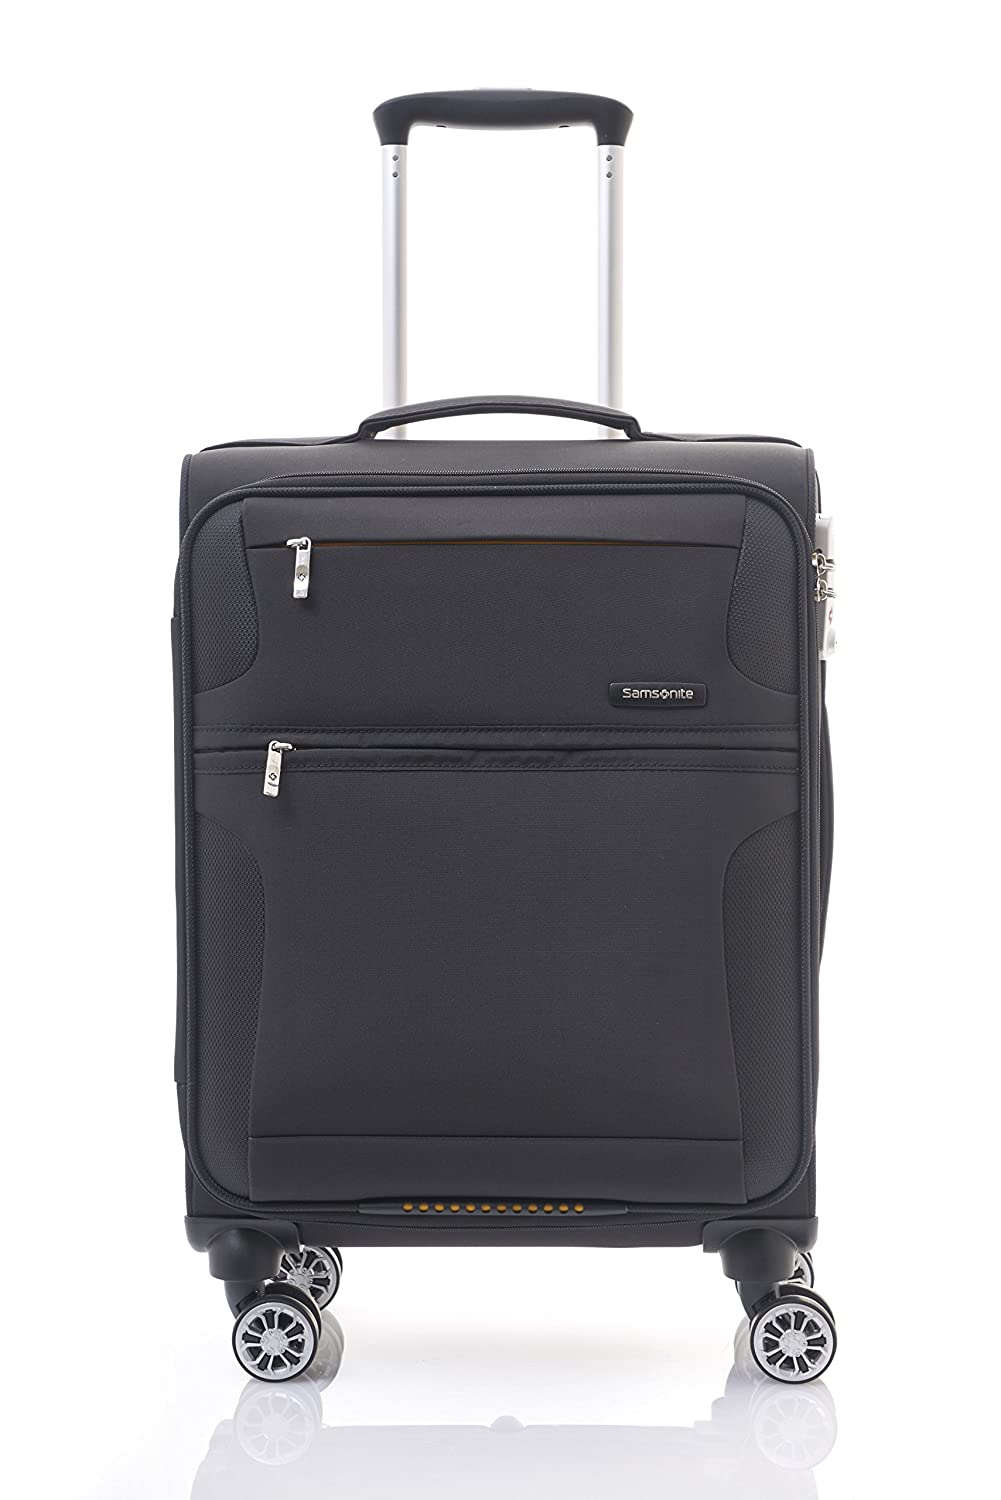 Samsonite Crosslite Spinner Carry-On, Black, International Carry-On (Model:92036-1041) Samsonite Corporation - CA